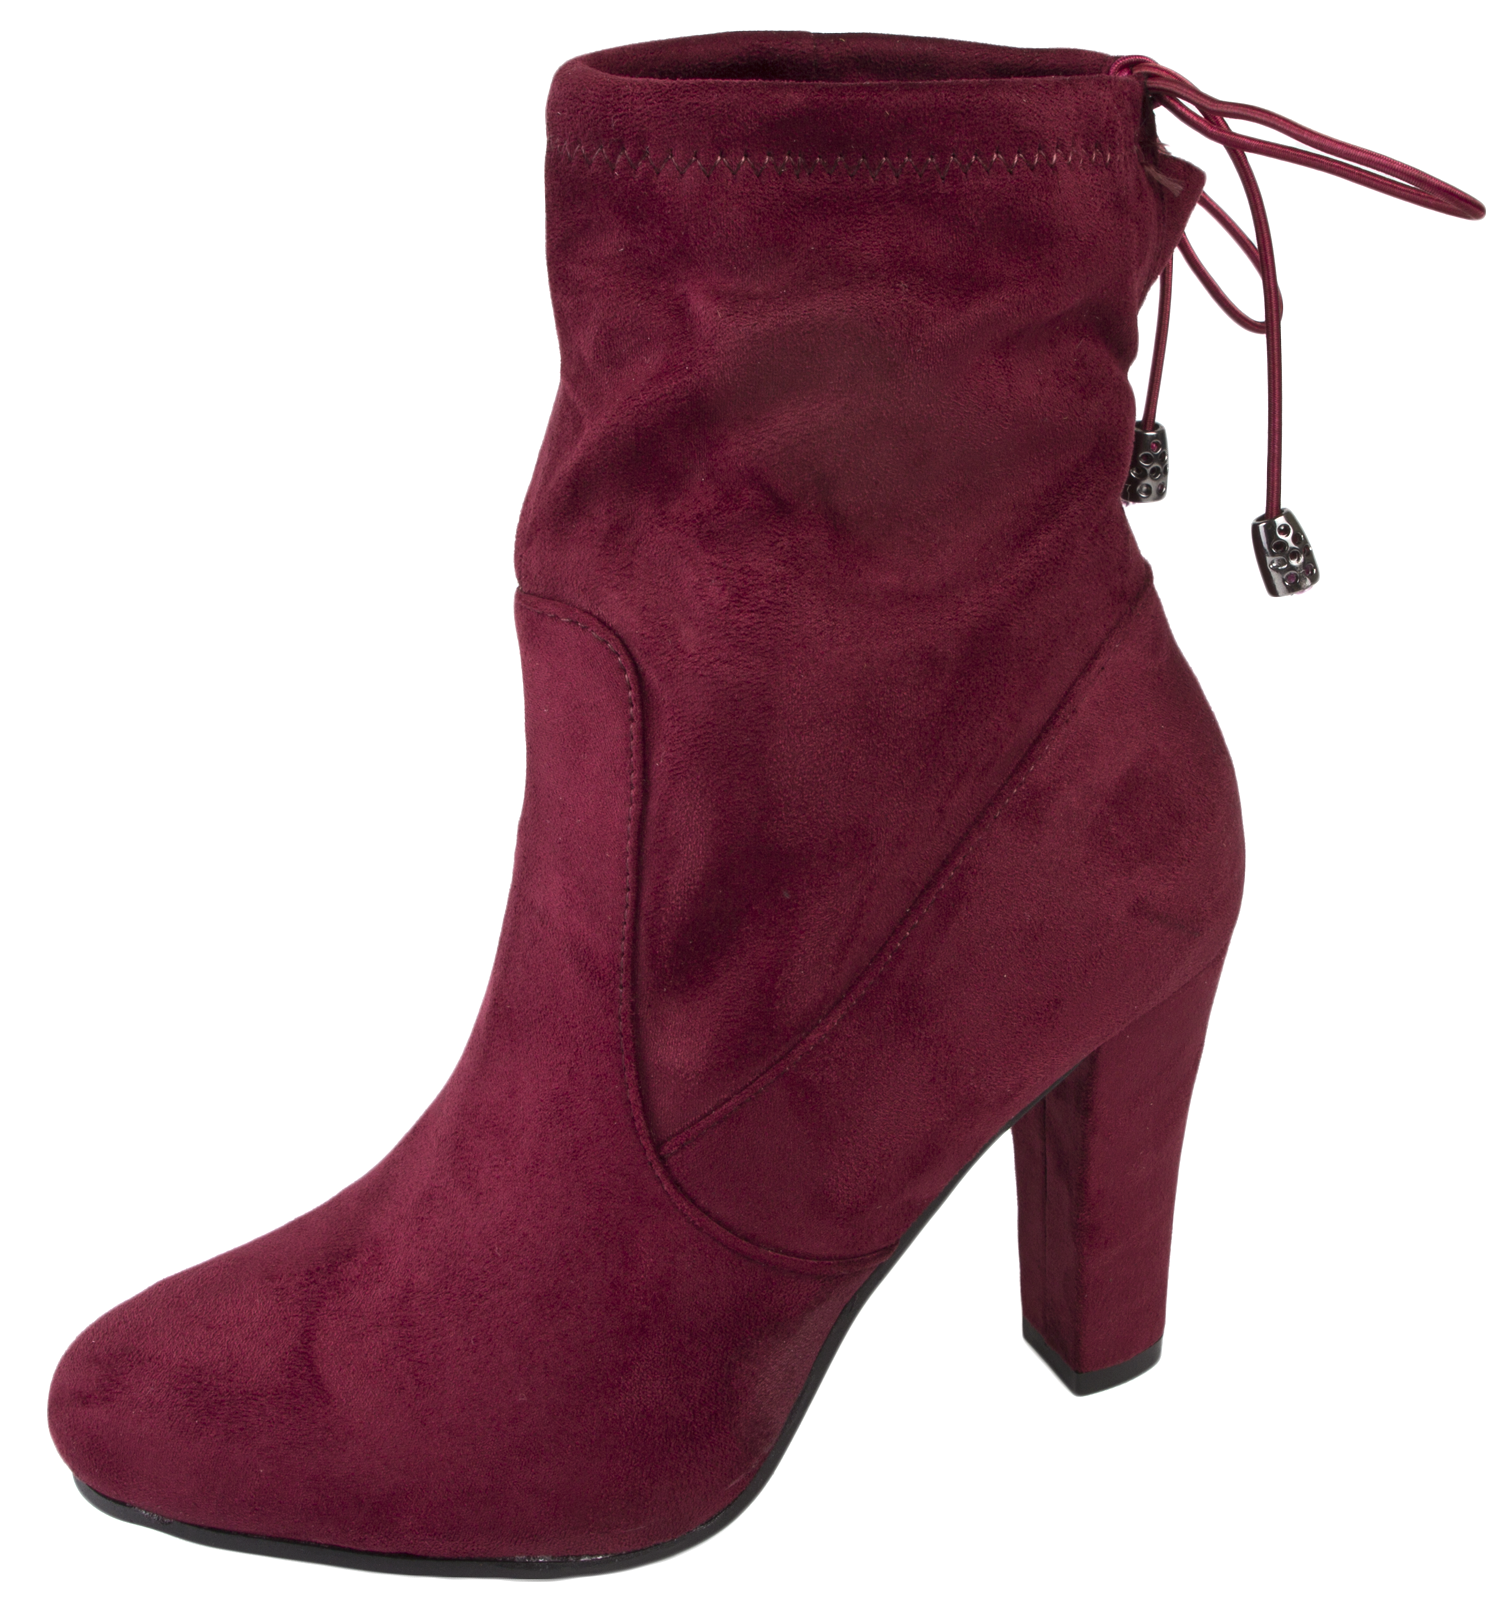 399df799790 Details about Womens High Heel Ankle Boots Adjustable Tie Top Faux Suede  Leather Ladies Size